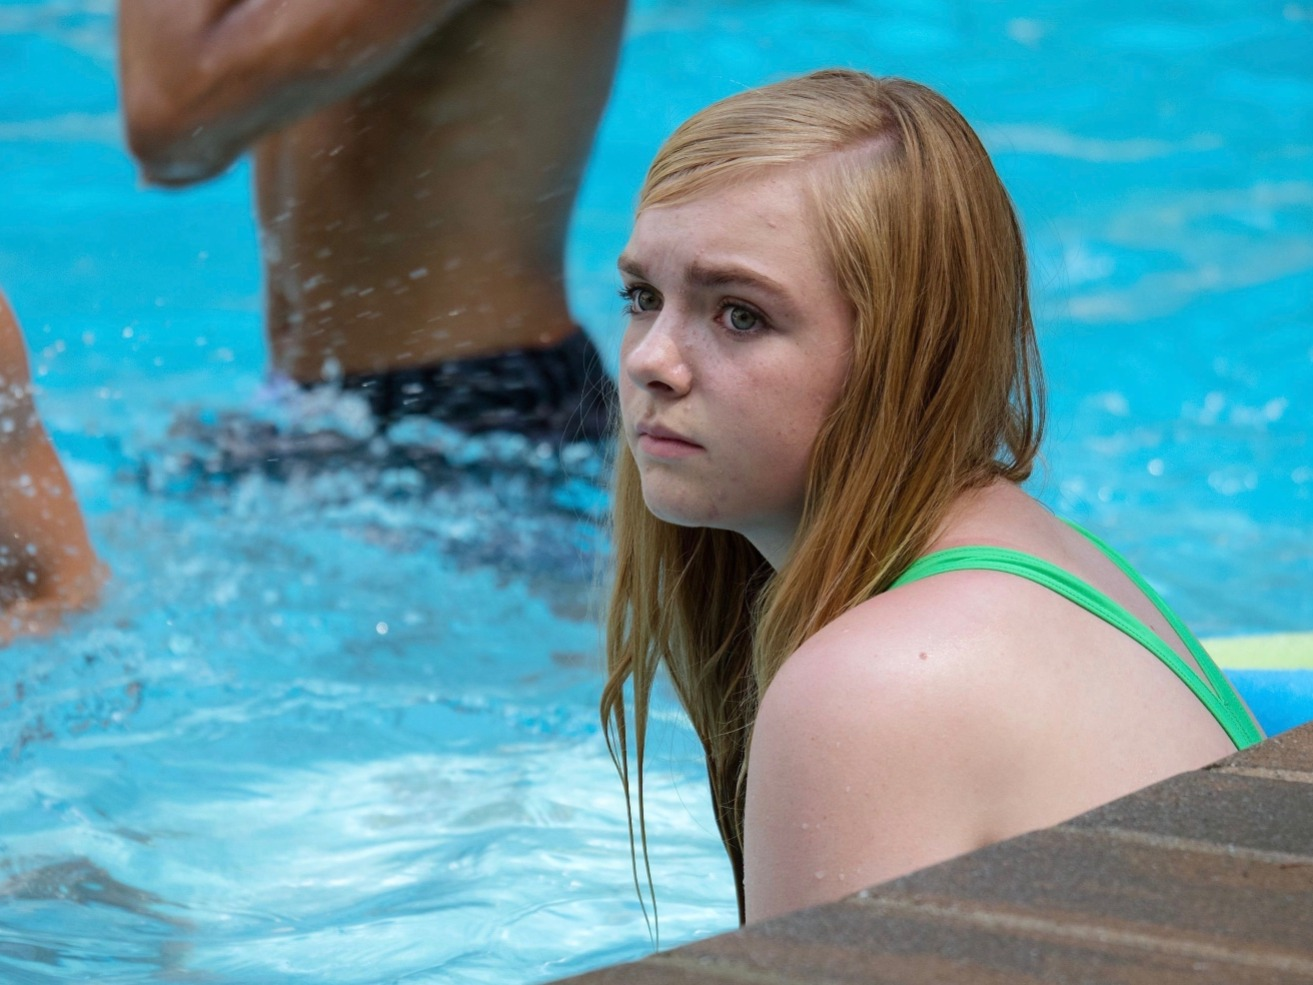 Image: Eighth Grade/A24 Films